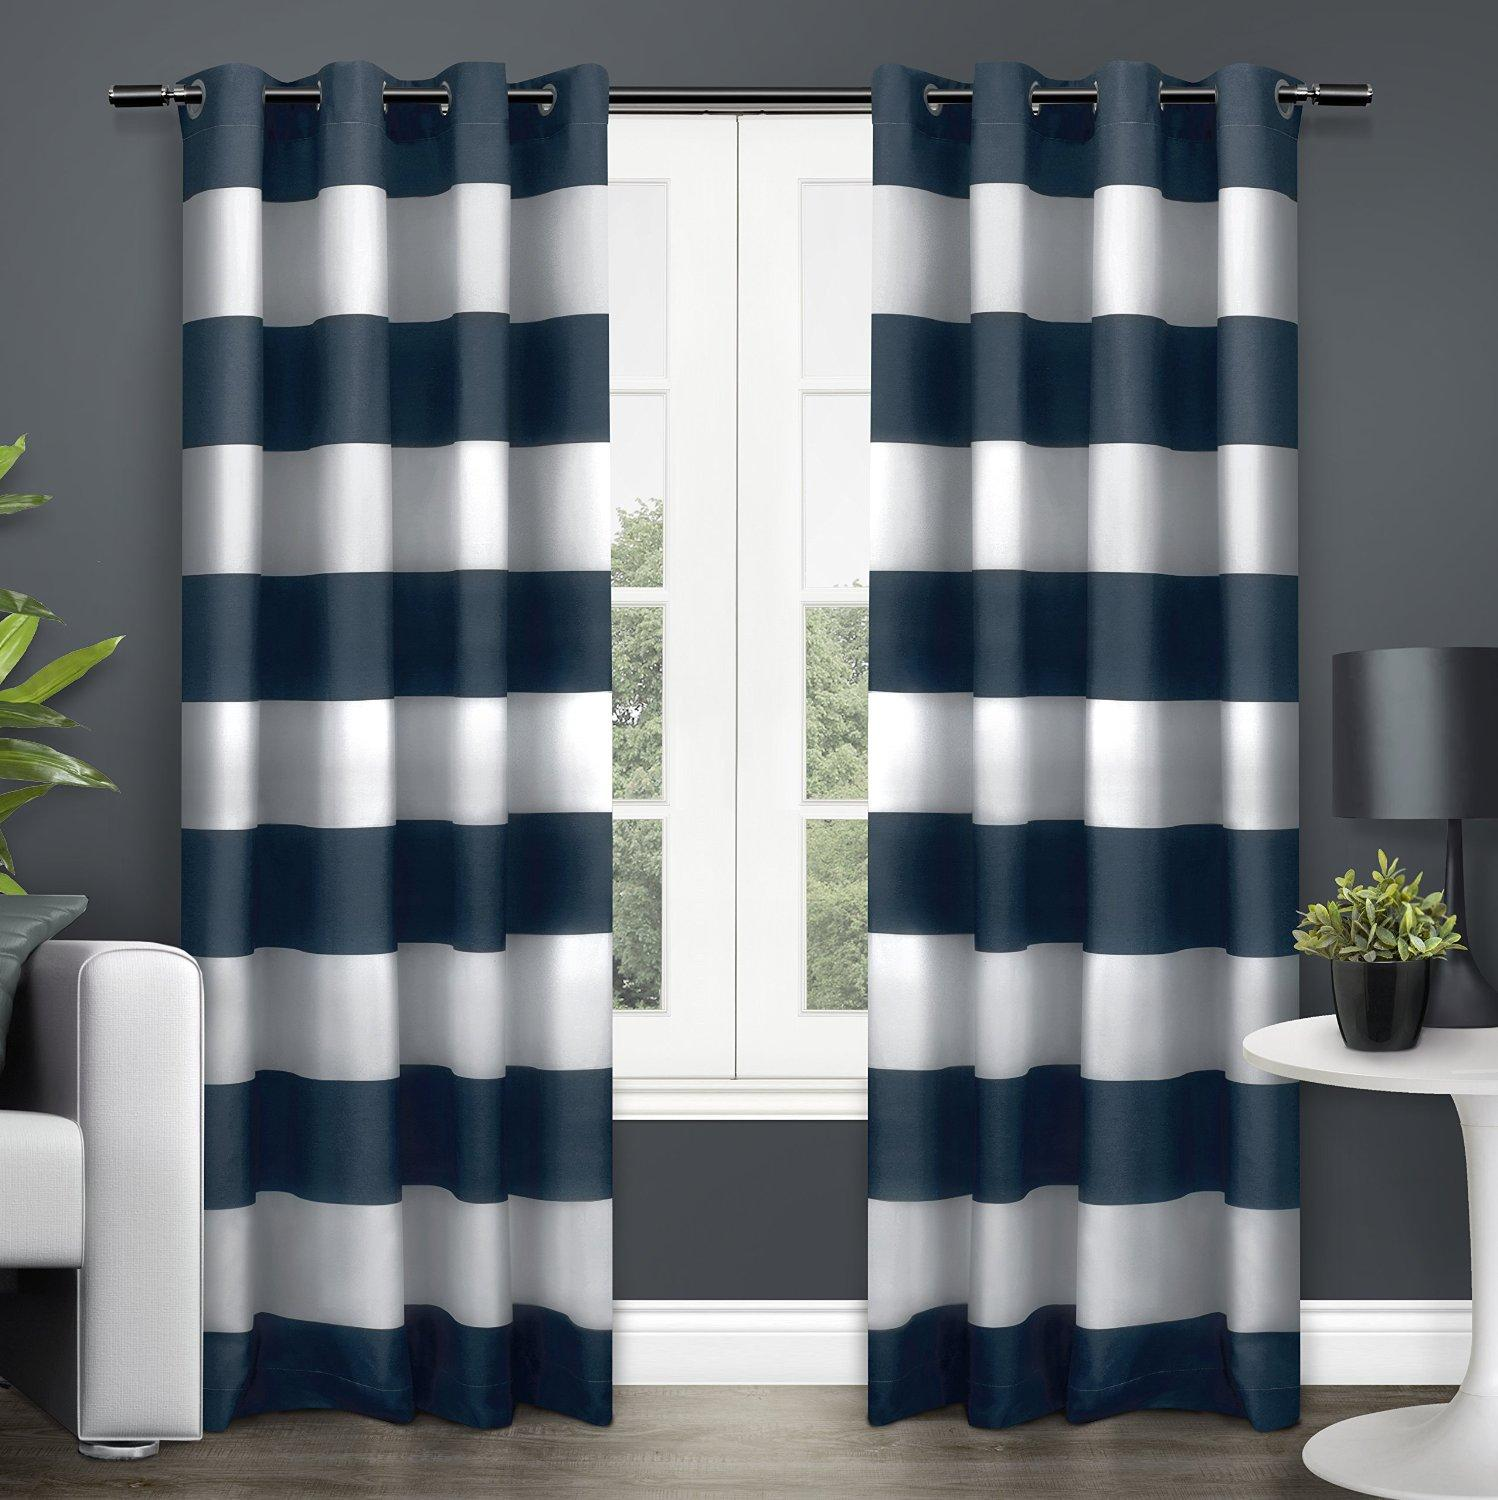 Navy curtains blackout - Navy Stripe Curtains From The Manufacturer